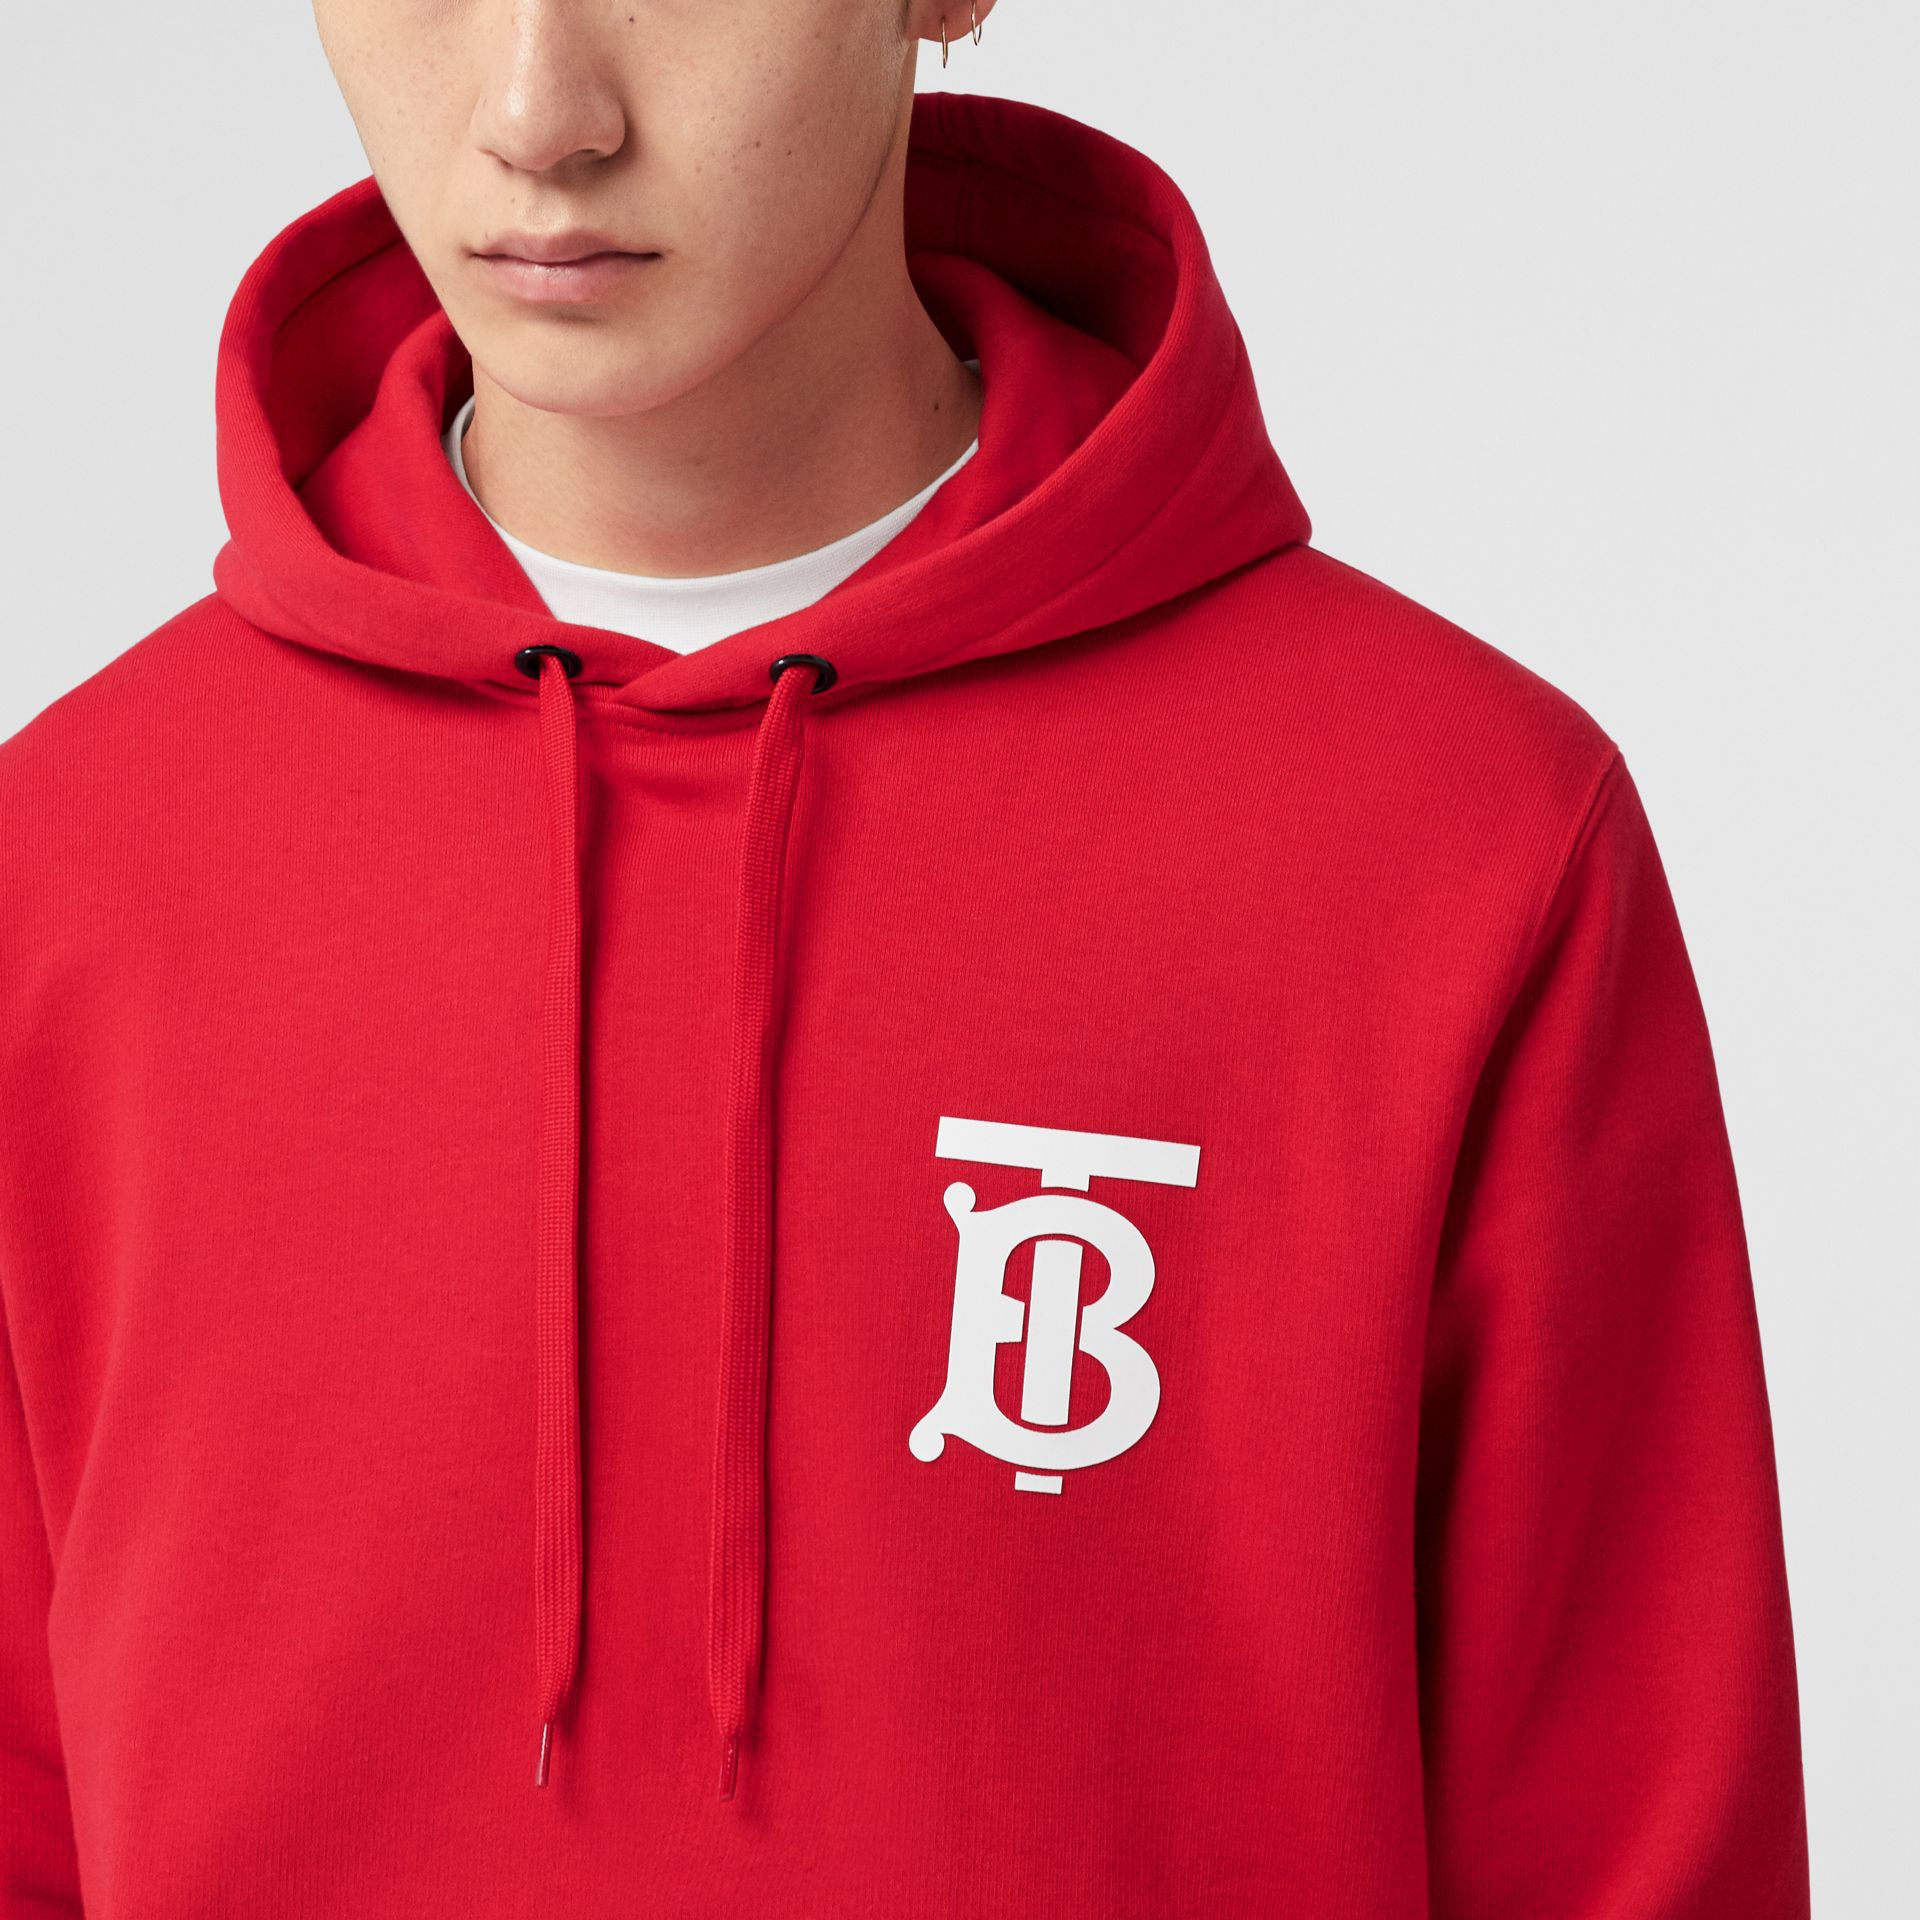 Monogram Motif Cotton Hoodie in Bright Red - Men | Burberry United Kingdom - gallery image 5